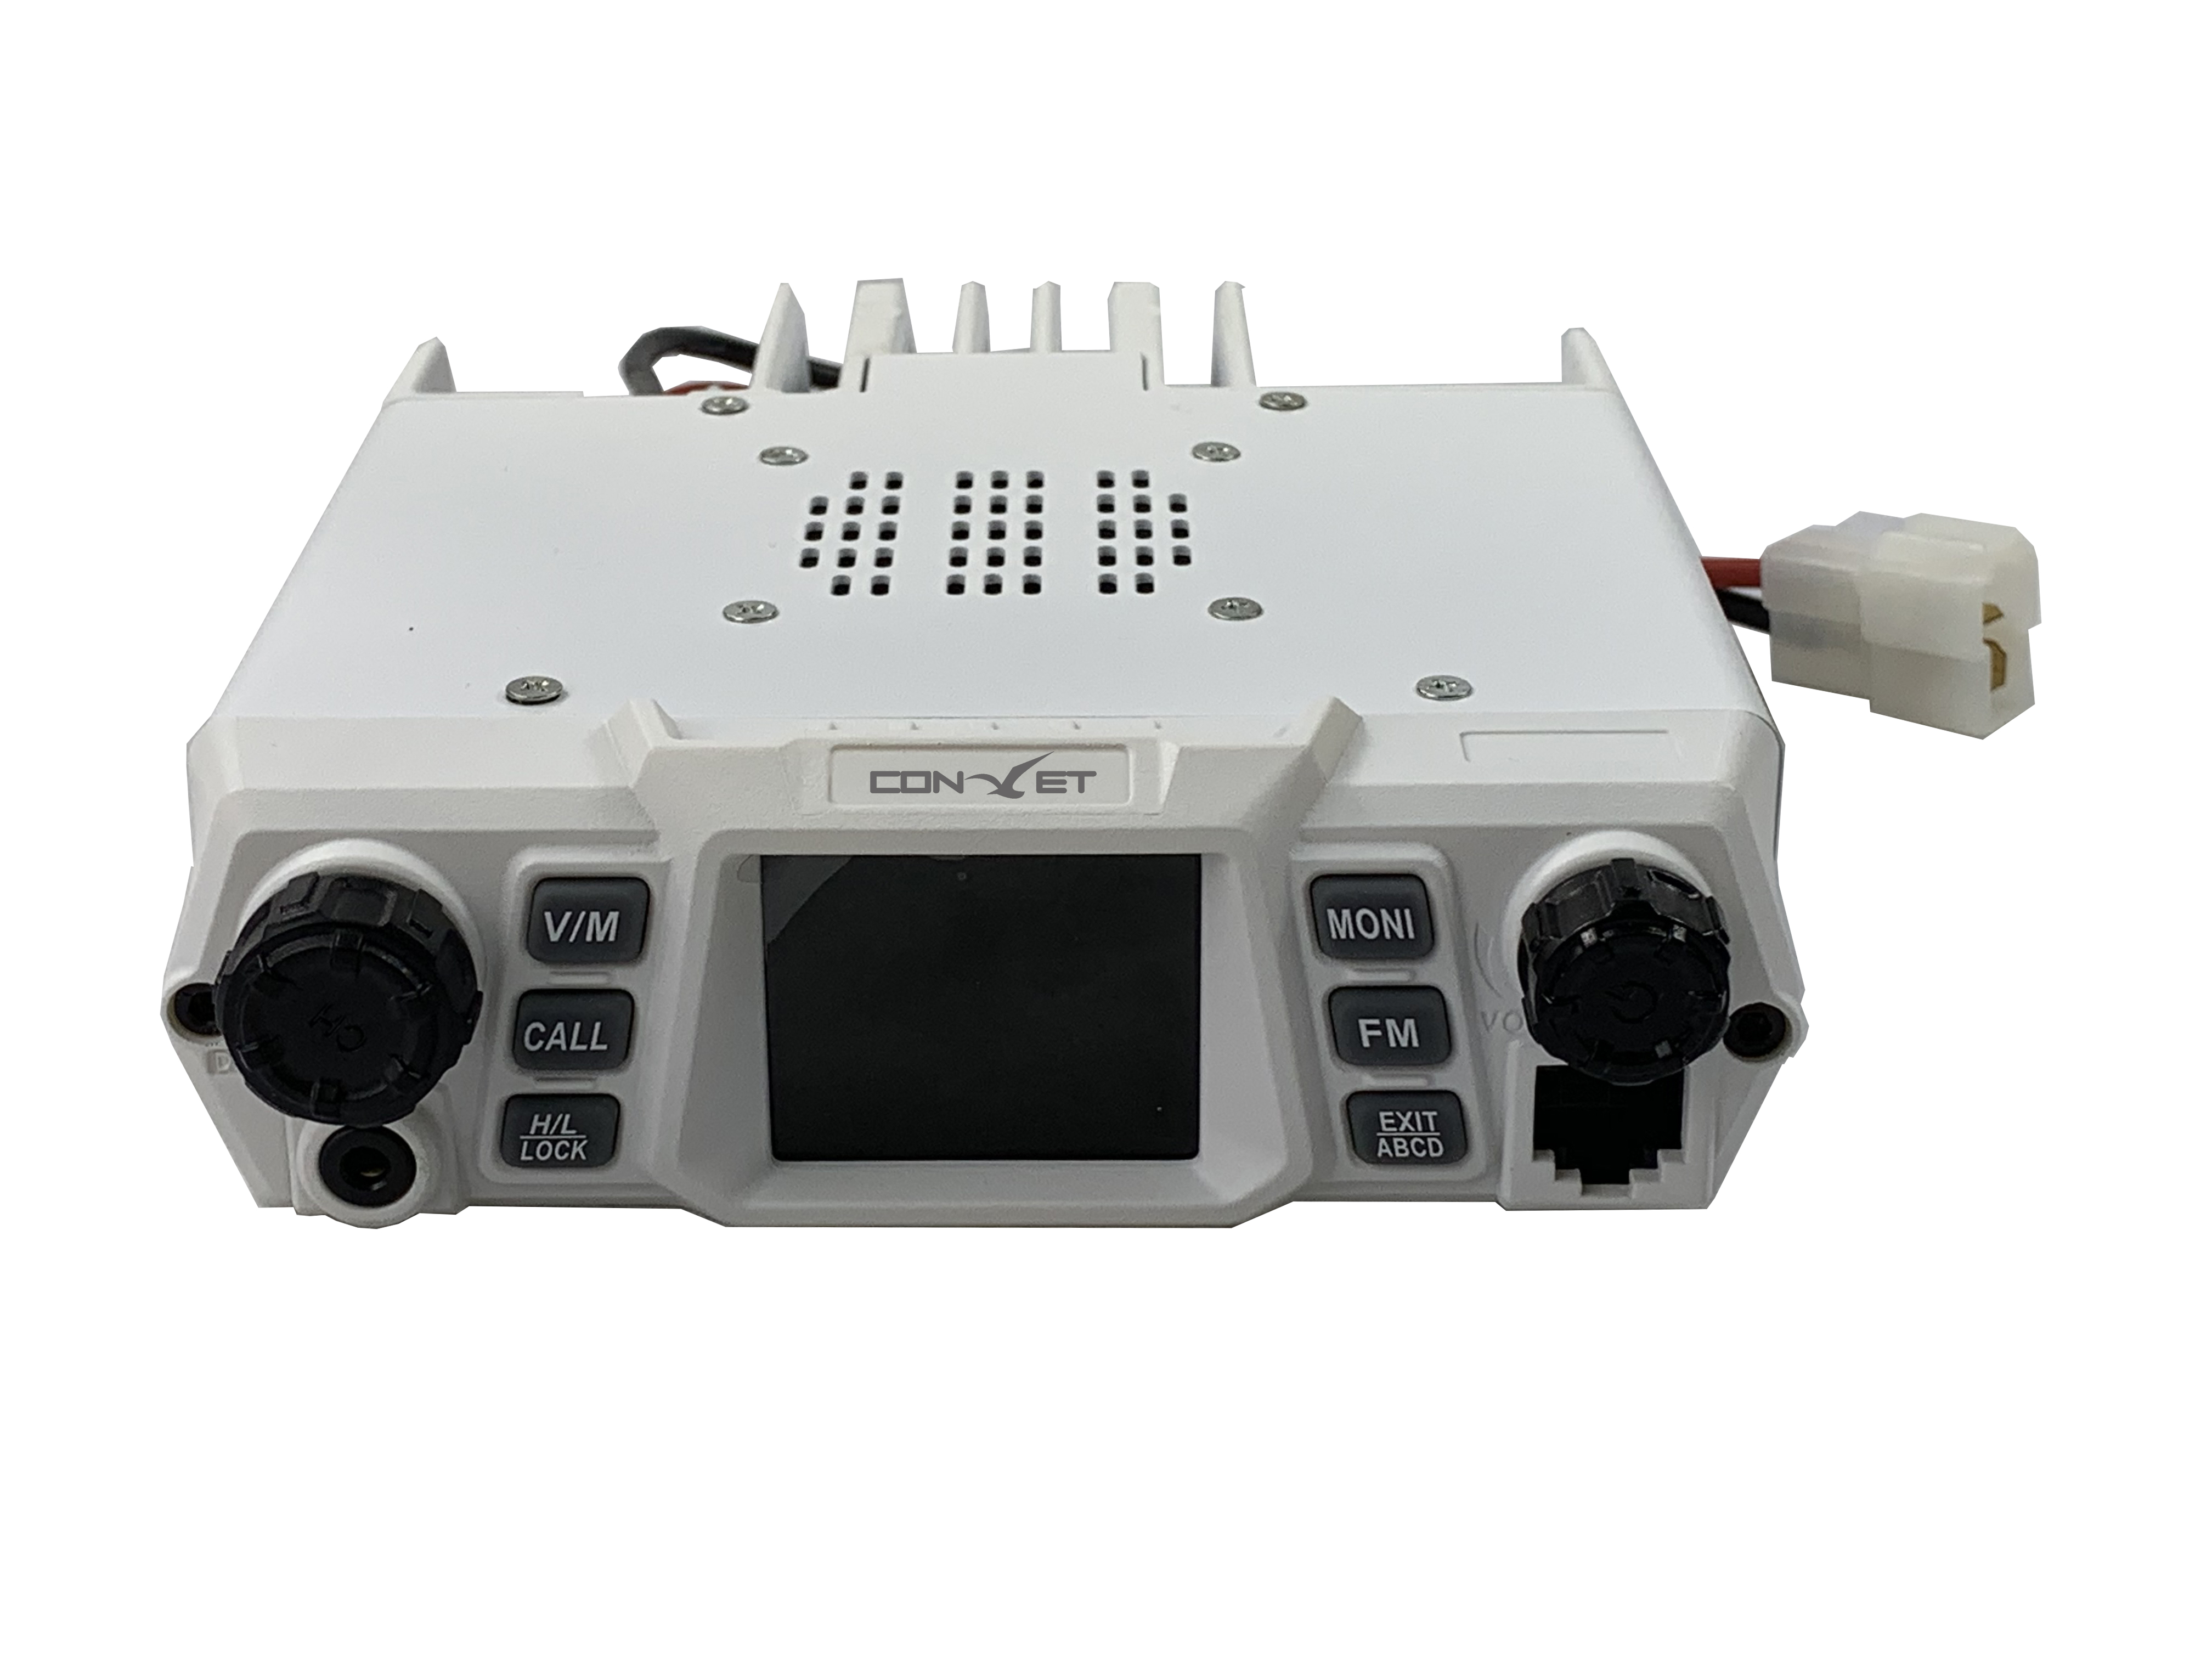 Contalk 100W Mobile Radio Base Station CTET-BS1000W